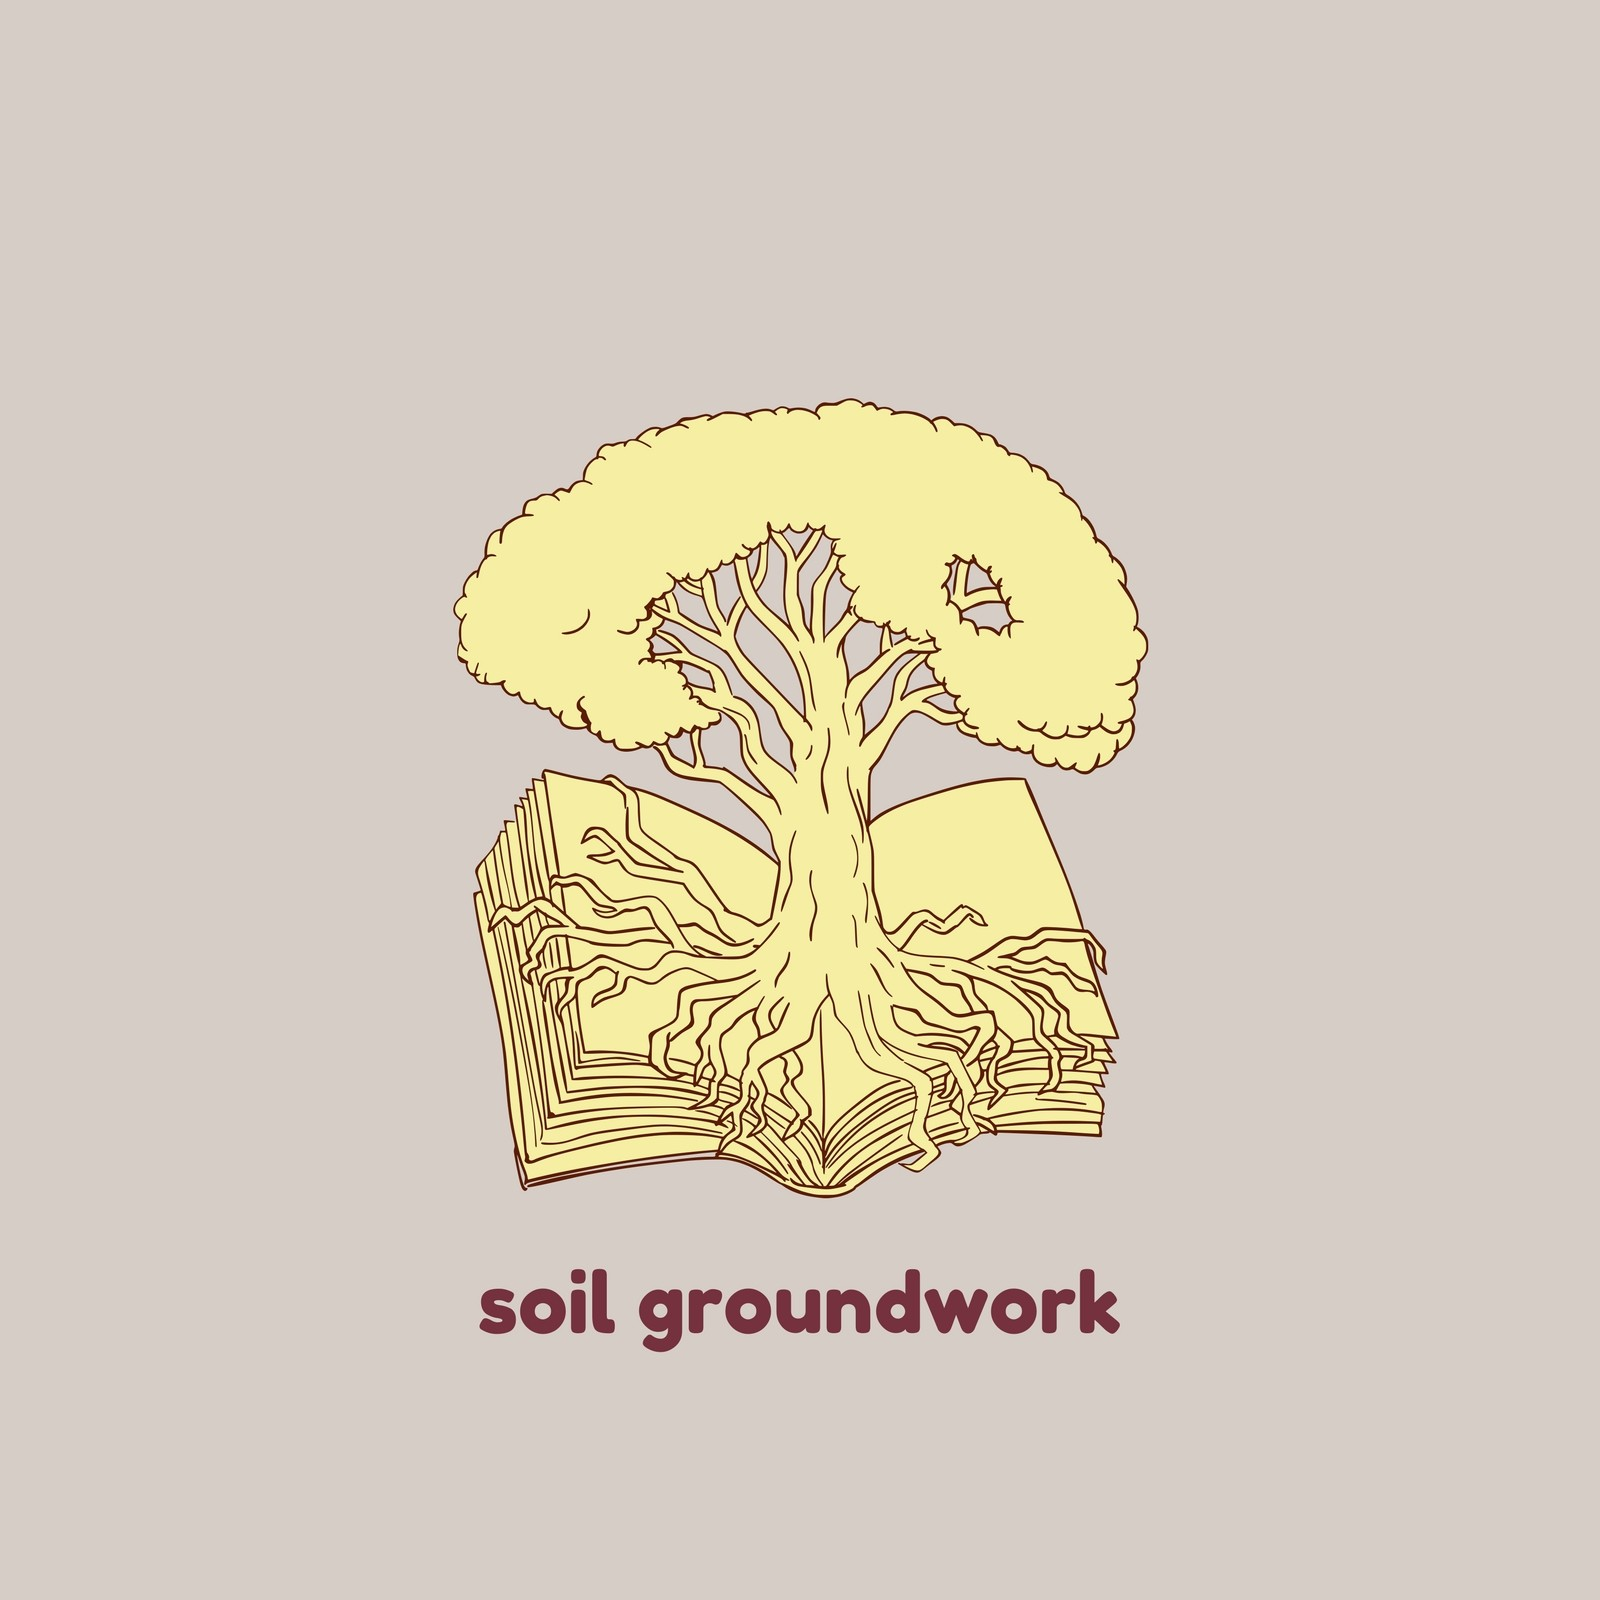 soil groundwork action box